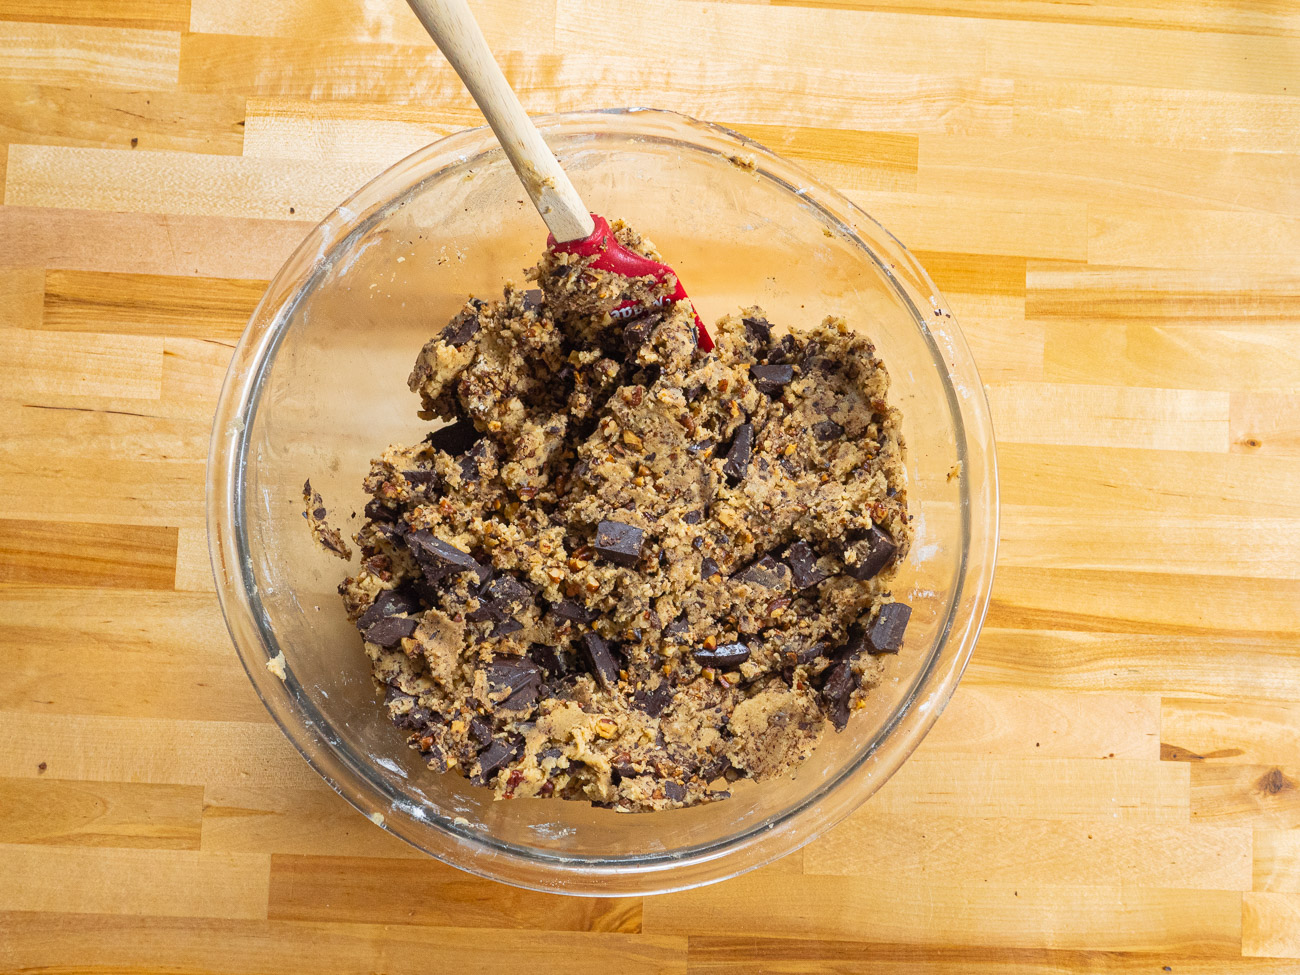 With a spatula or wooden spoon, gently fold in the flour mixture until just combined. Fold in the chocolate chunks and buttered pecans.